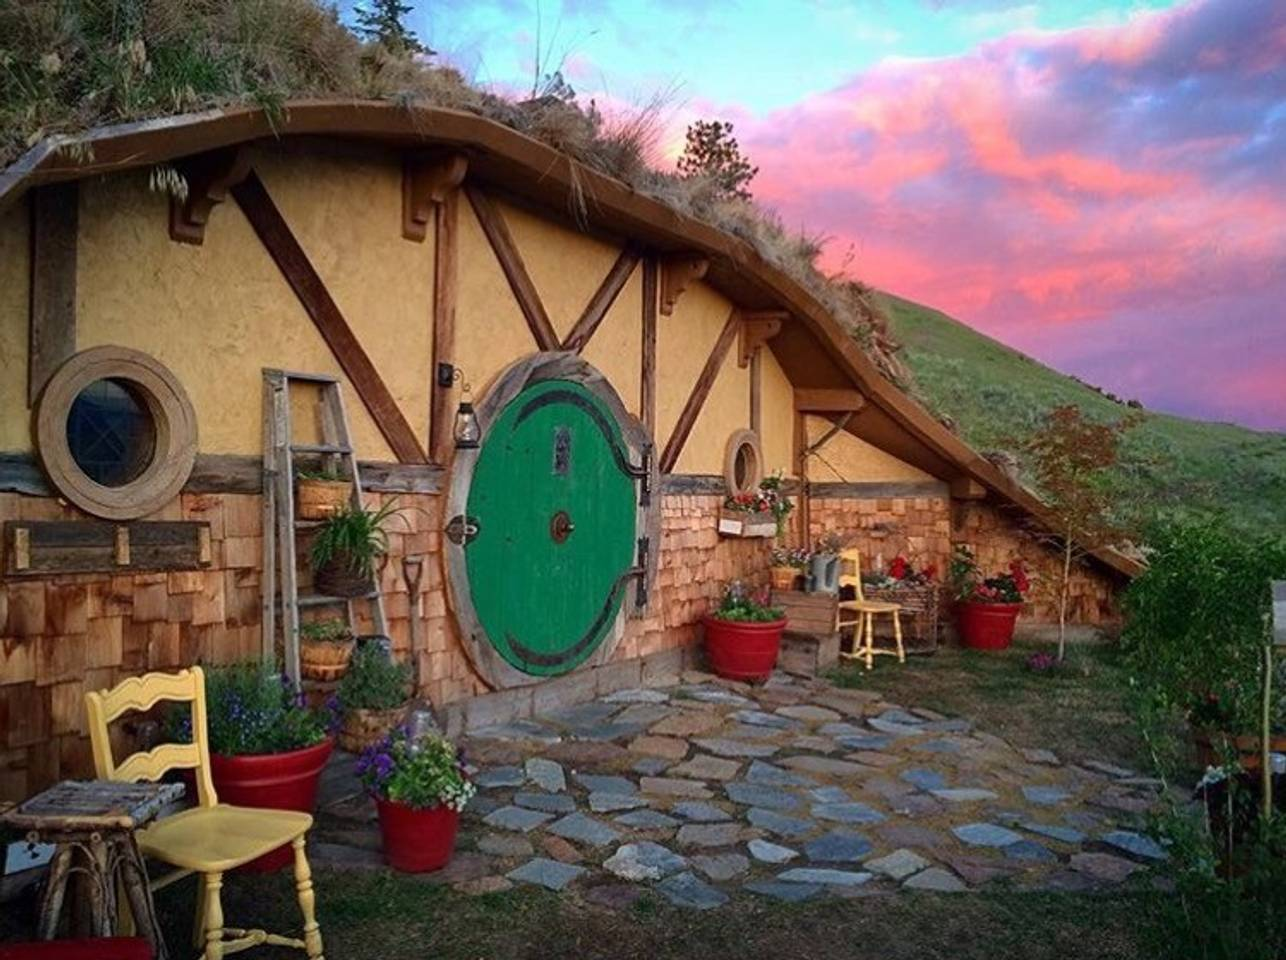 Coolest Airbnbs - Hobbit House